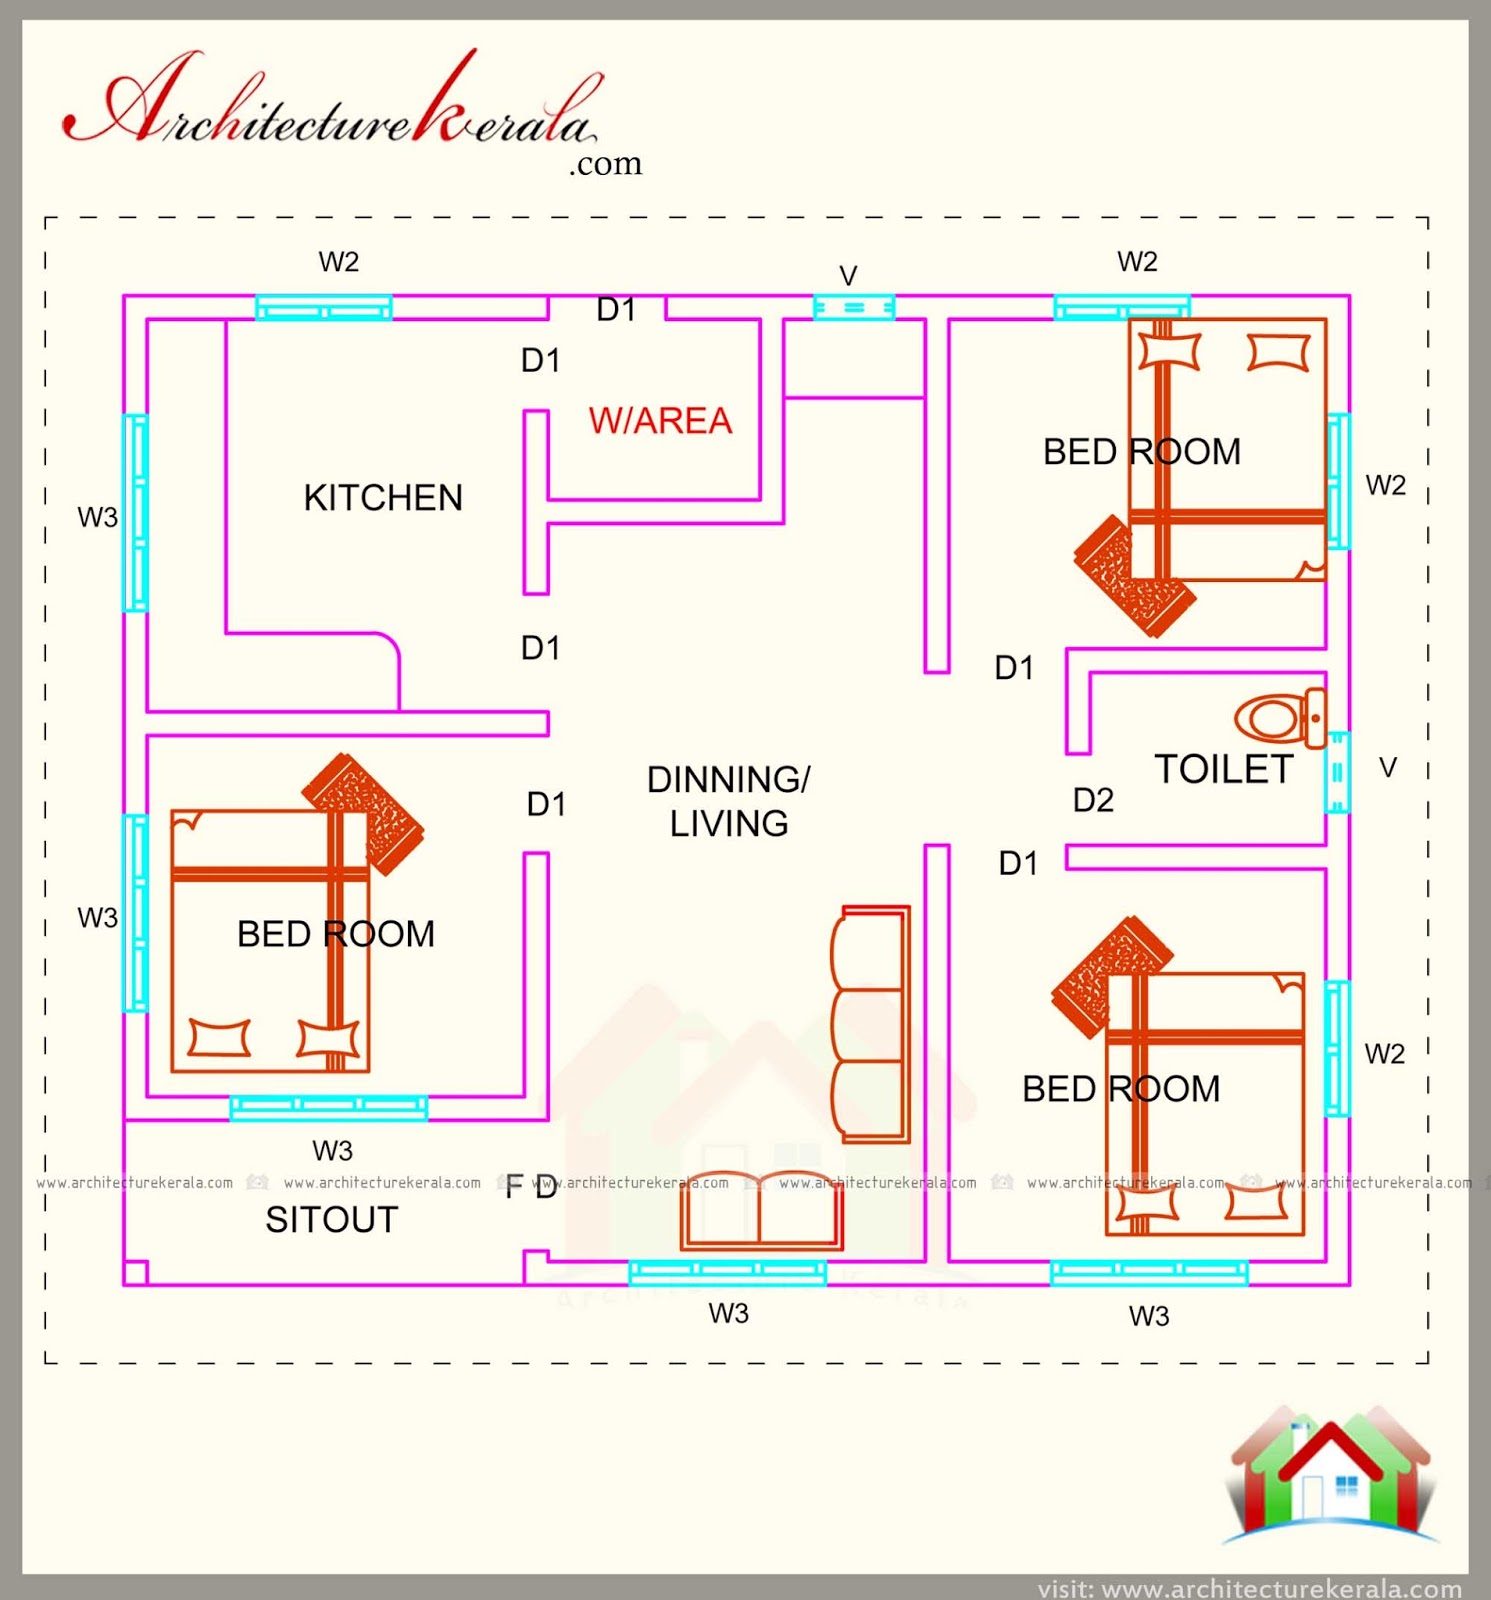 760 square feet 3 bedroom house plan architecture kerala for Kerala style 2 bedroom house plans